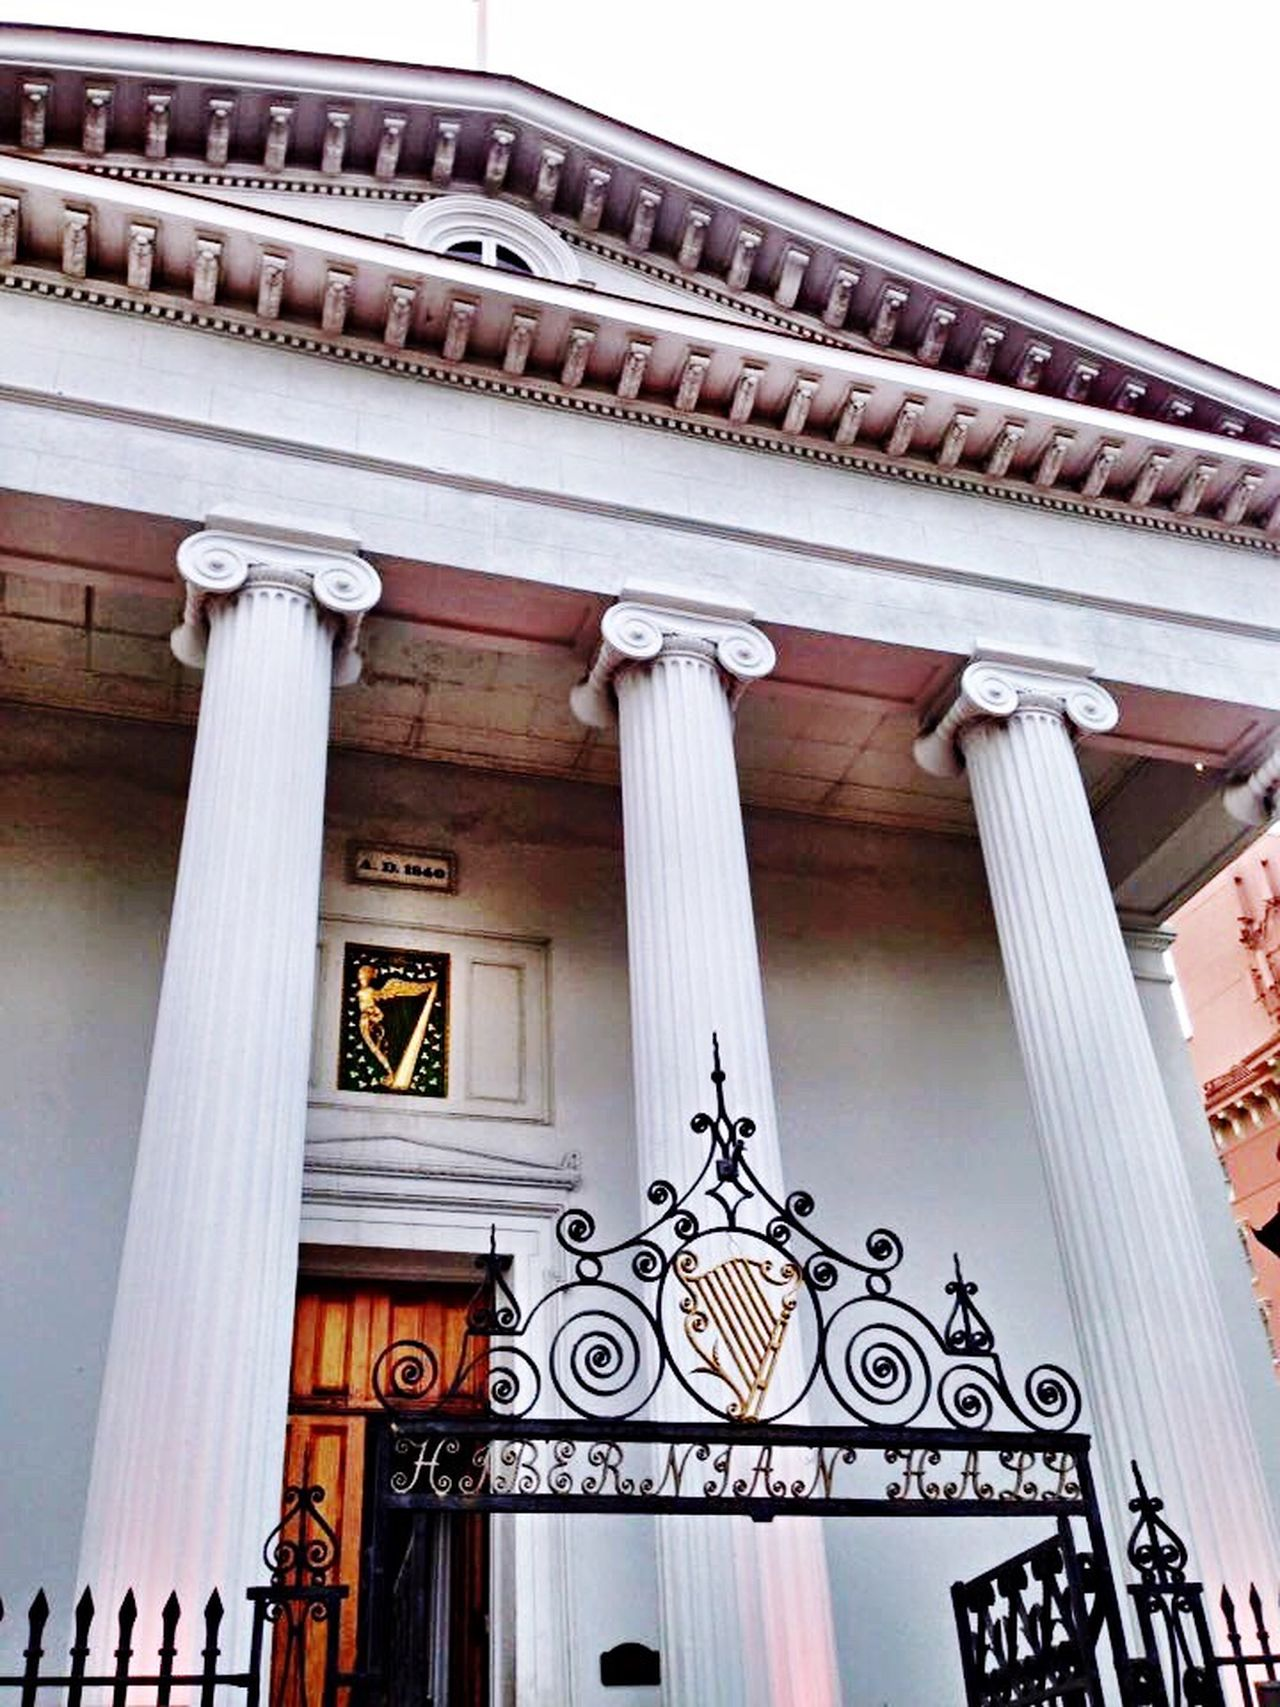 Charleston SC Hibernian Hall Music Architecture Wrought Iron Harp Classical Architecture